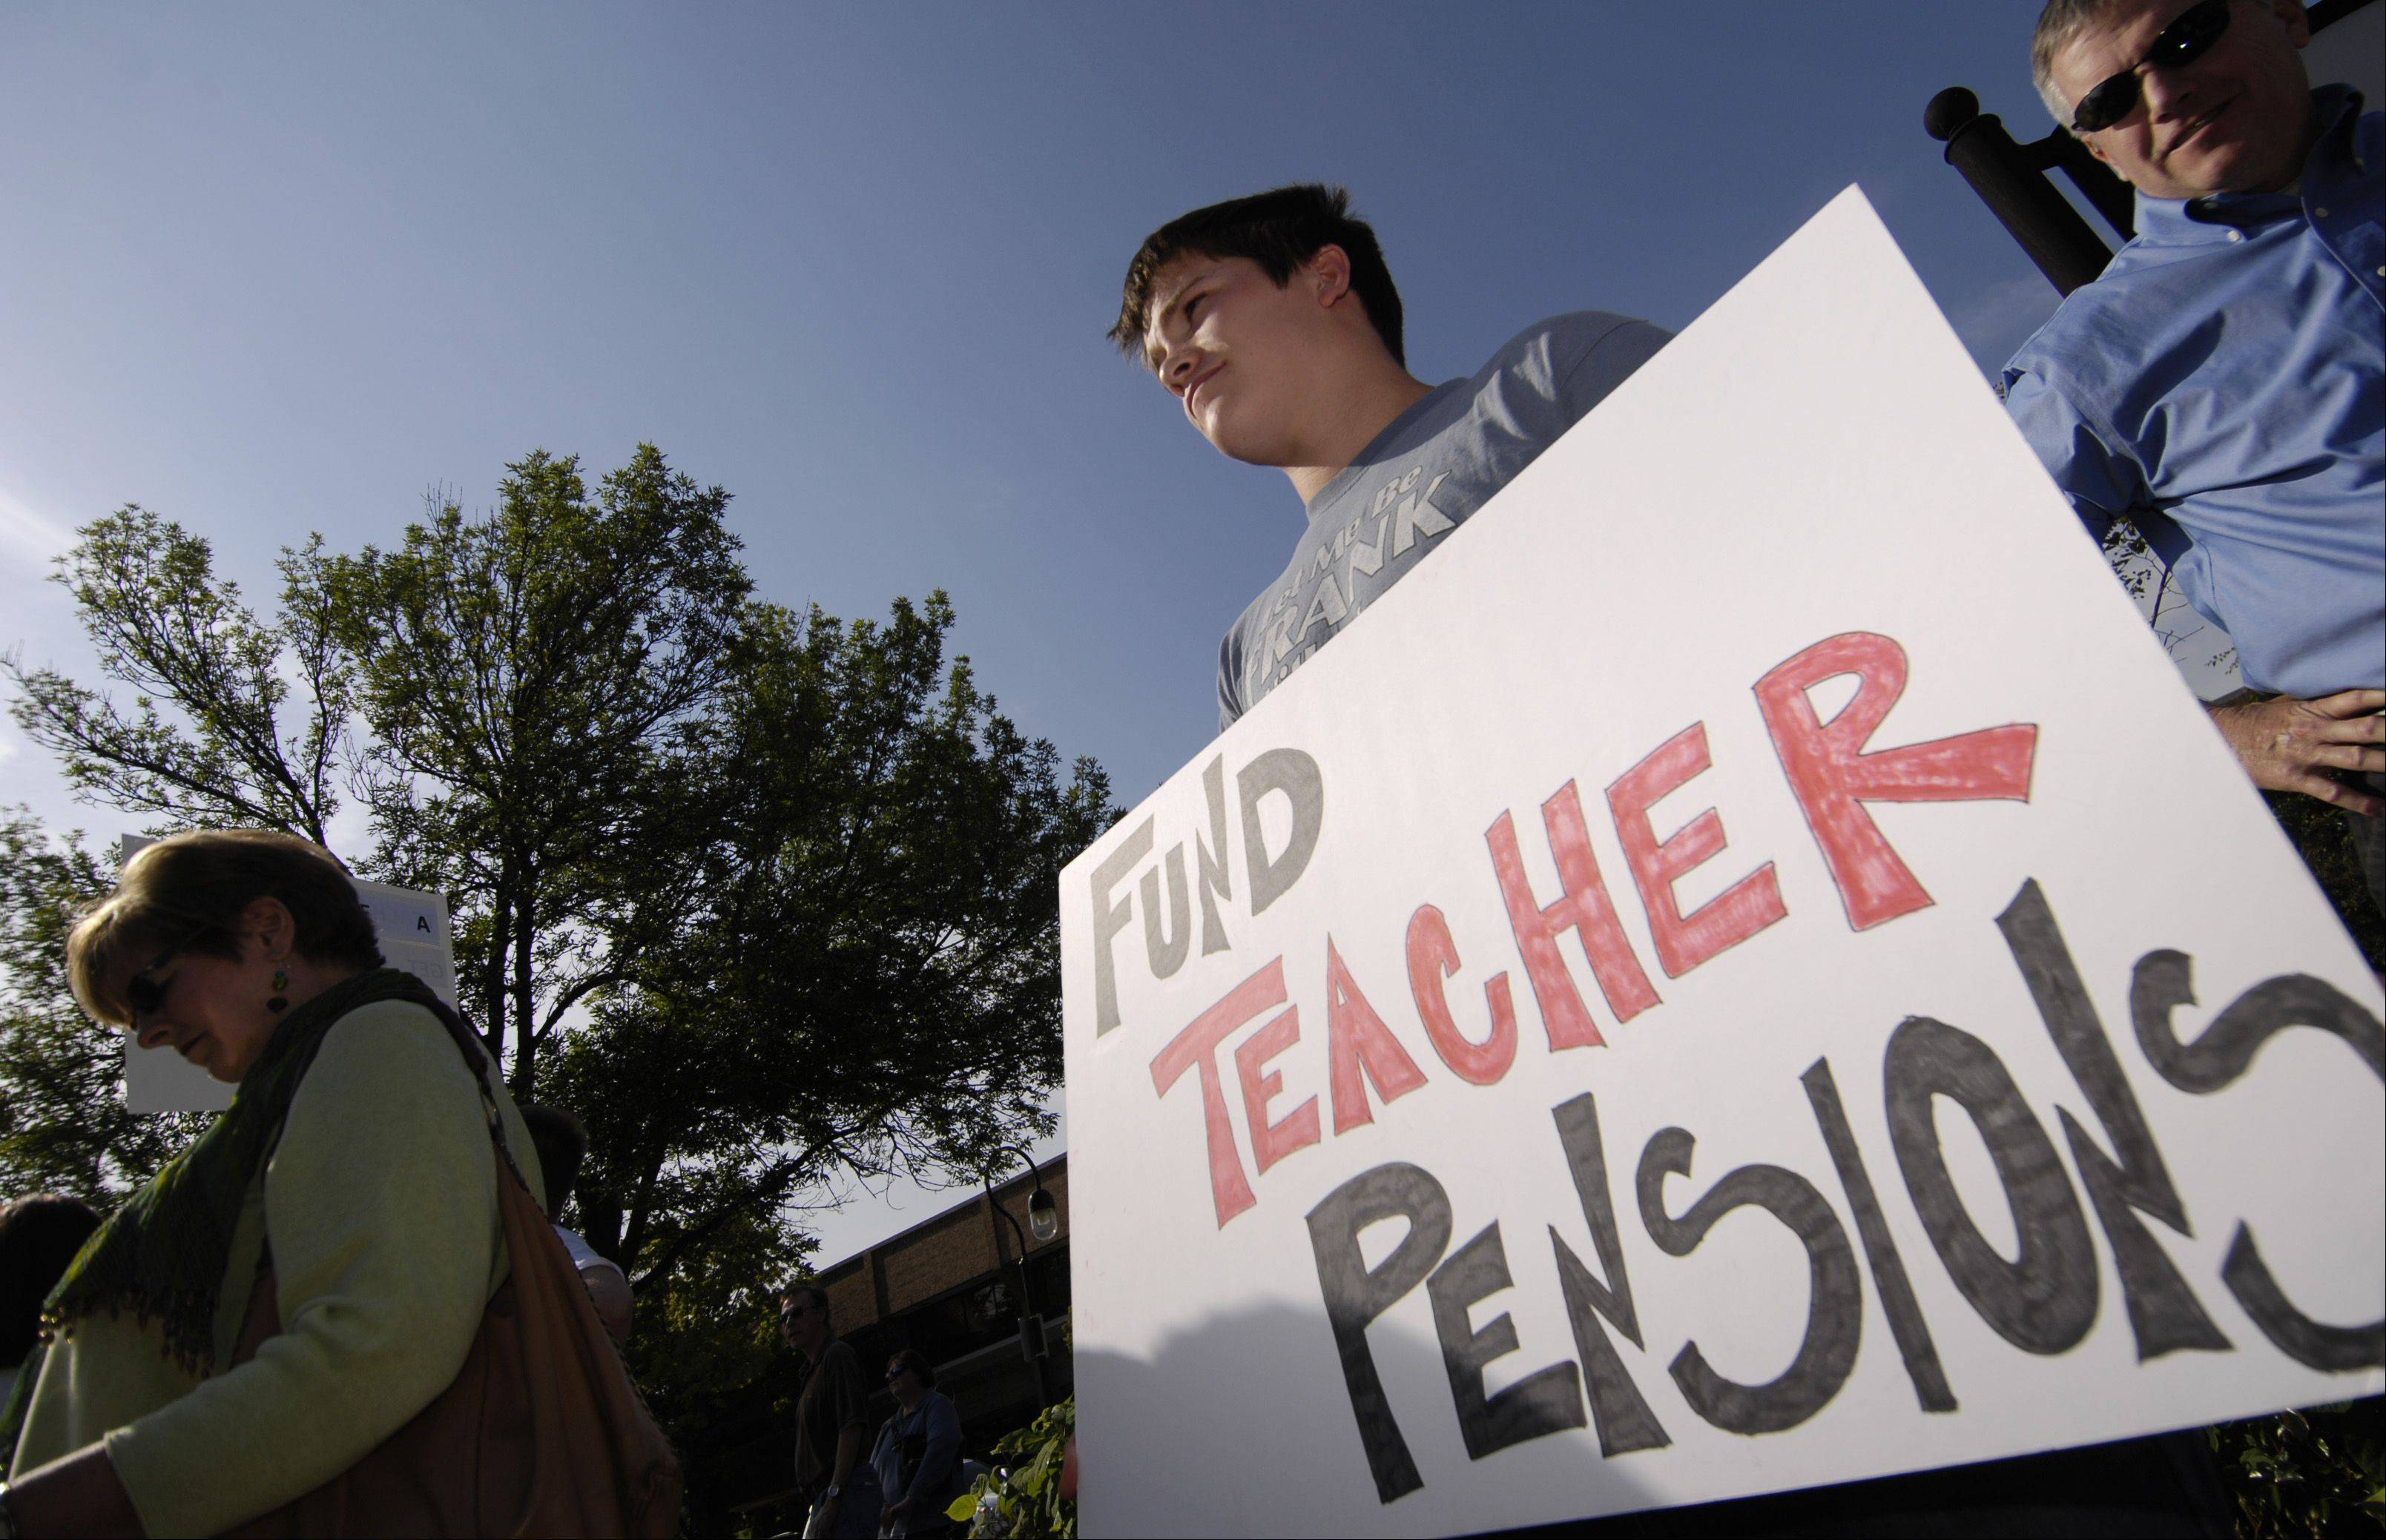 Protesters rallied in Naperville earlier this year to voice opposition to proposed cuts in teacher pensions.